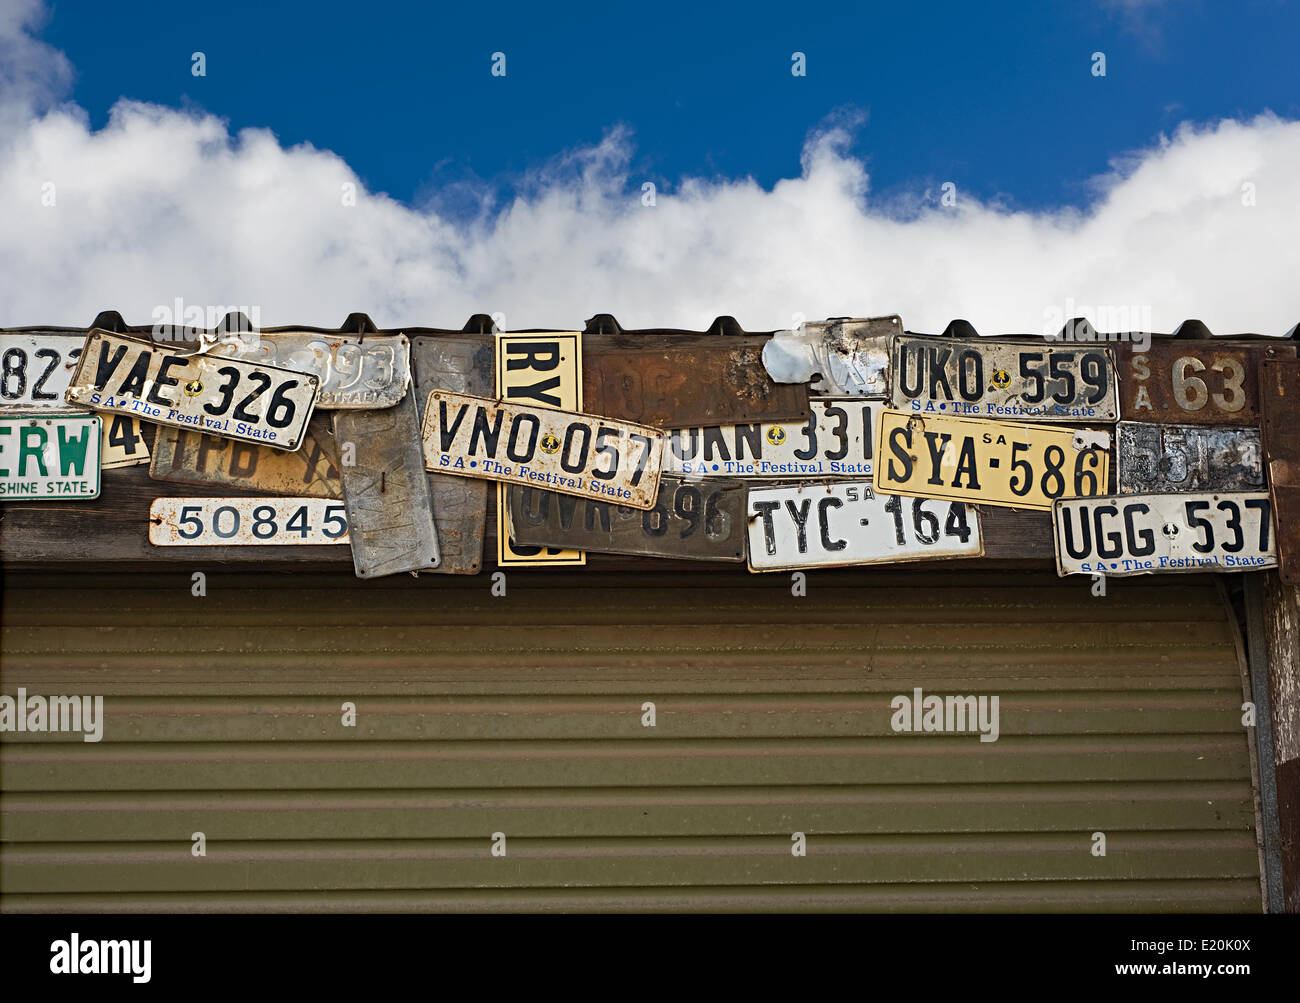 image of old Australian number plates - Stock Image